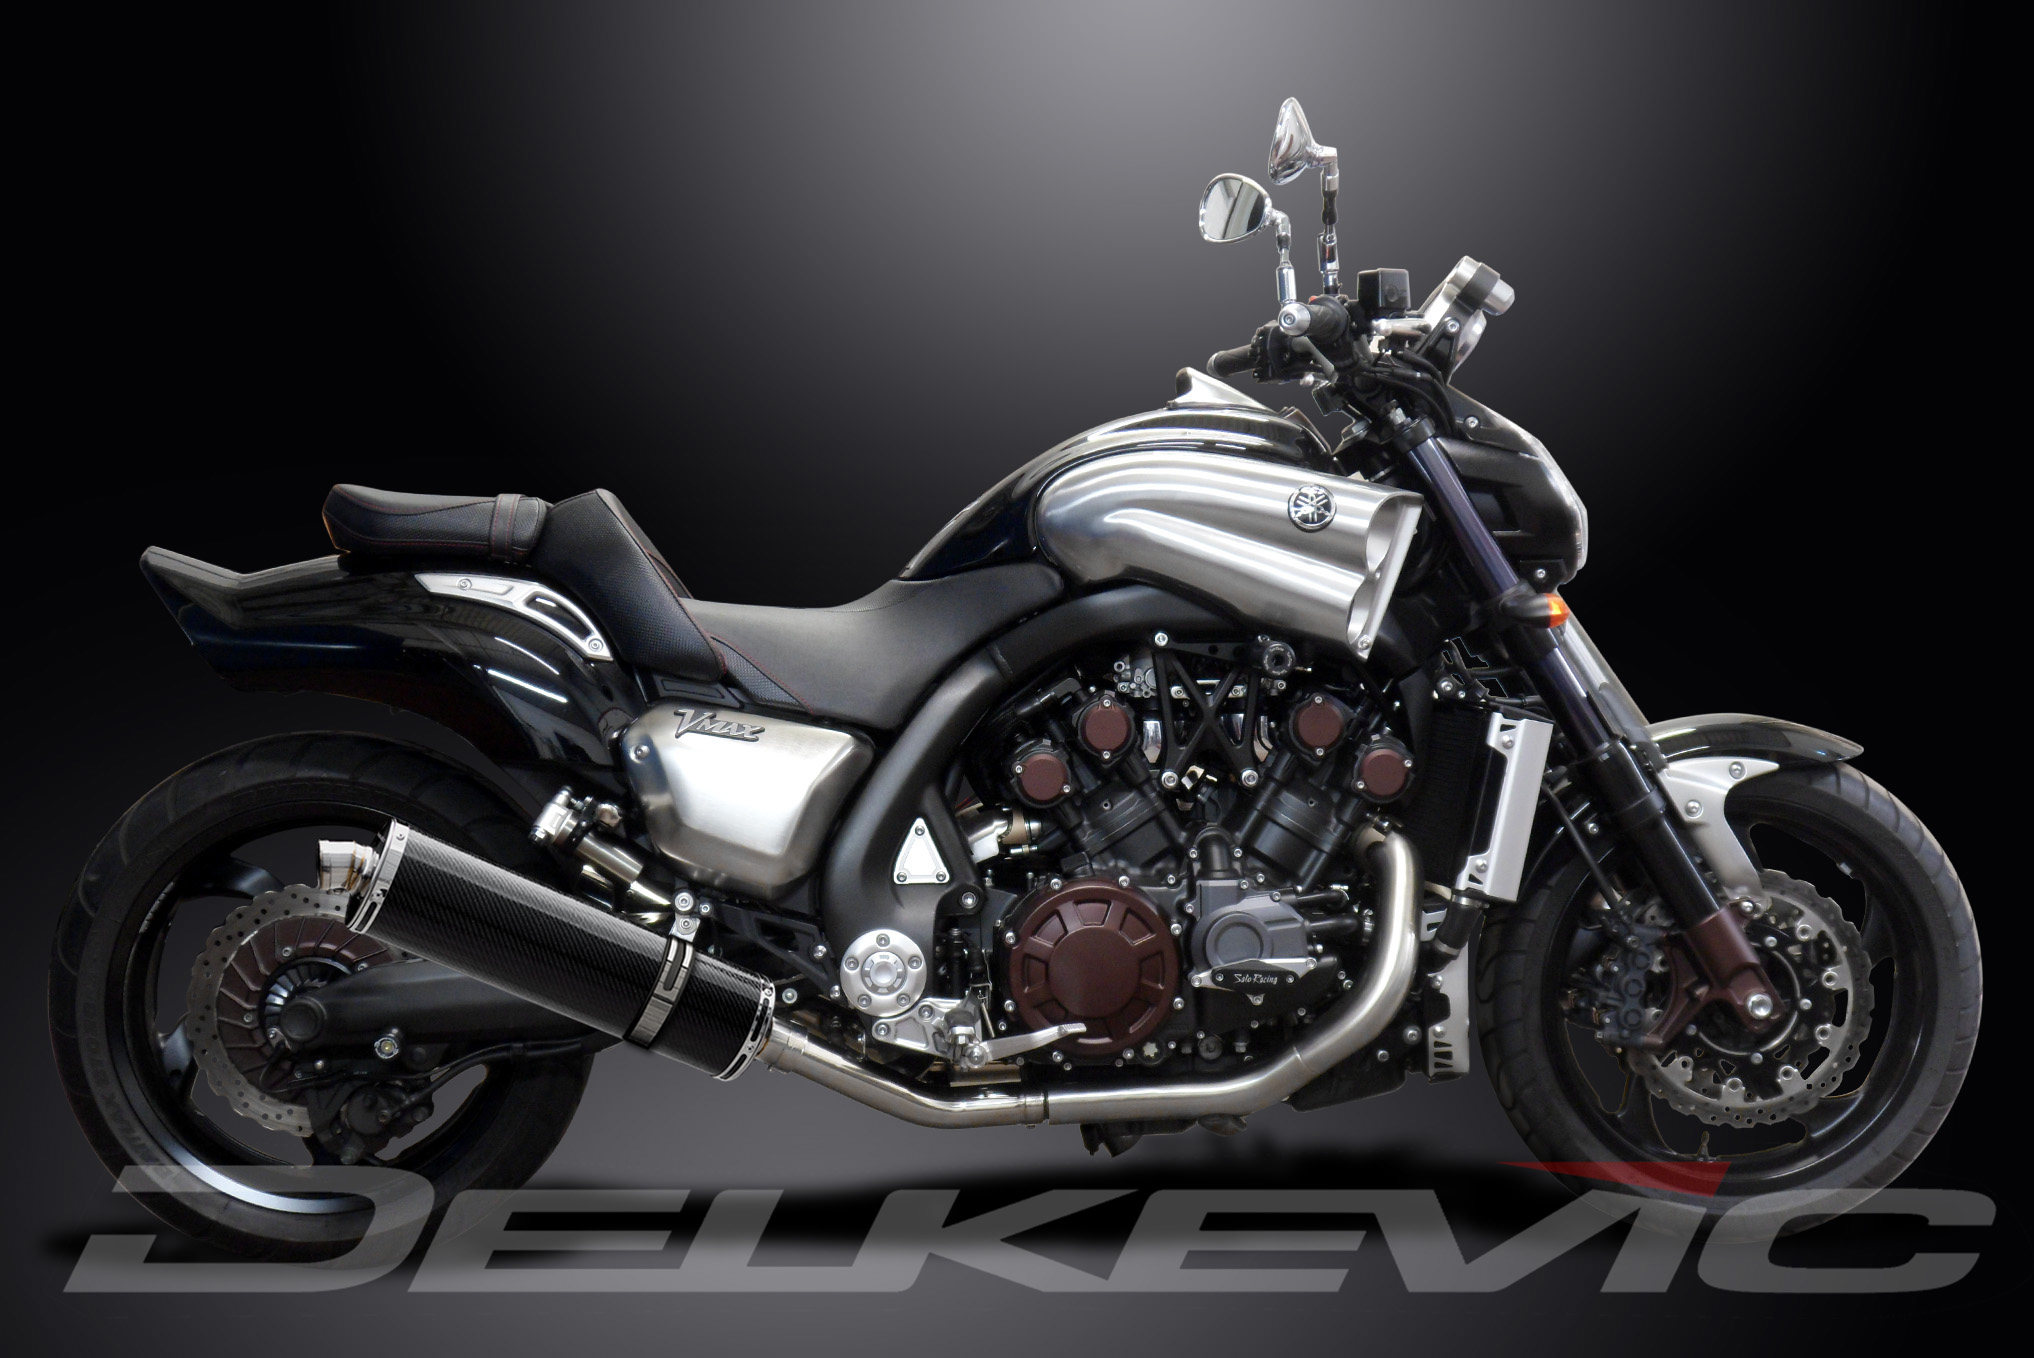 Details about Yamaha VMAX 1700 De-Cat Pipe 18